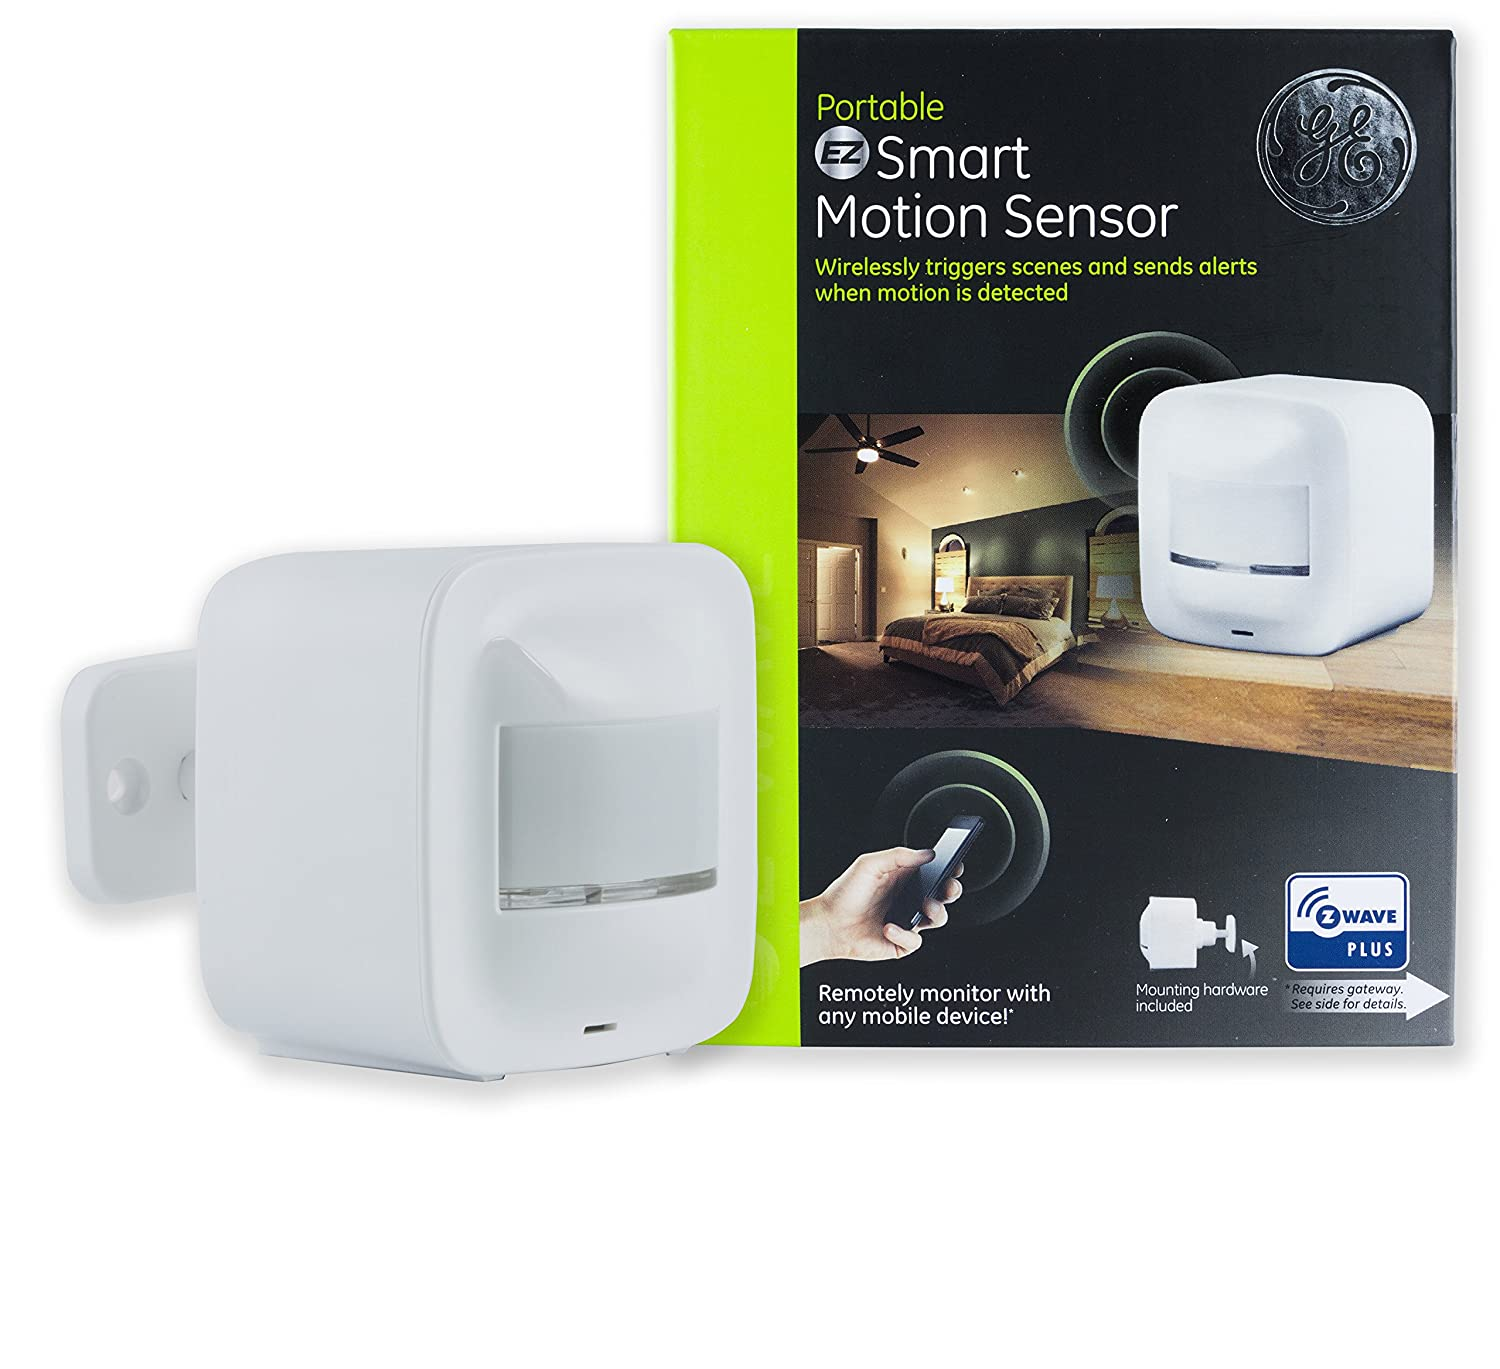 GE Enbrighten Z-Wave Plus Smart Motion Sensor, Table, Shelf, or Wall Mount, On/Off after No Motion is Detected, 180 Degree Detection Range, Scene Activation, Works with SmartThings, Wink, 34193